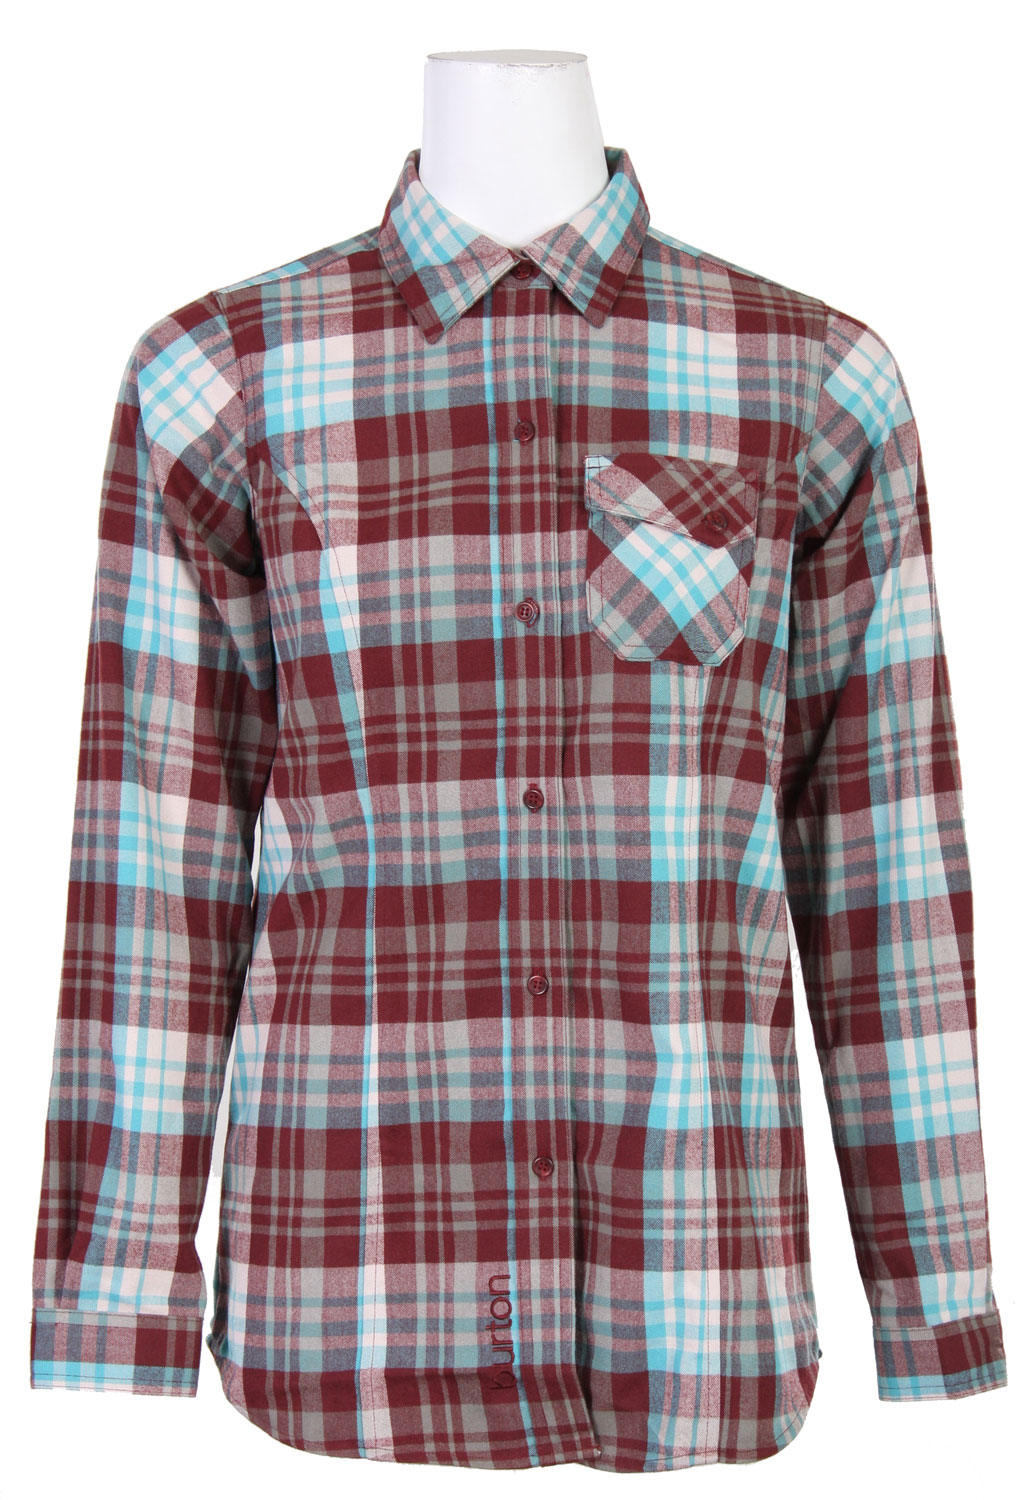 Snowboard Finally, flannel that won't freeze! Those who've rocked the button-down know,it starts out cozy, but ends up saturated and sloppy. Not this time with our stealth use of DRYRIDE Ultrawick fabric in the women's Burton Player Flannel. Burton Team Riders, Kelly Clark and Hannah Teter, dig the function, too, with it's quick drying, highly breathable performance and odor-fighting antimicrobial finish.Key Features of The Burton Player 1st Layer Top:  DRYRIDE Ultrawick Yarn-Dyed Plaid Flannel  Quick-Drying and Highly Breathable  Stink-Proof Antimicrobial Finish  Button Up Closure  Chest Pocket - $41.95